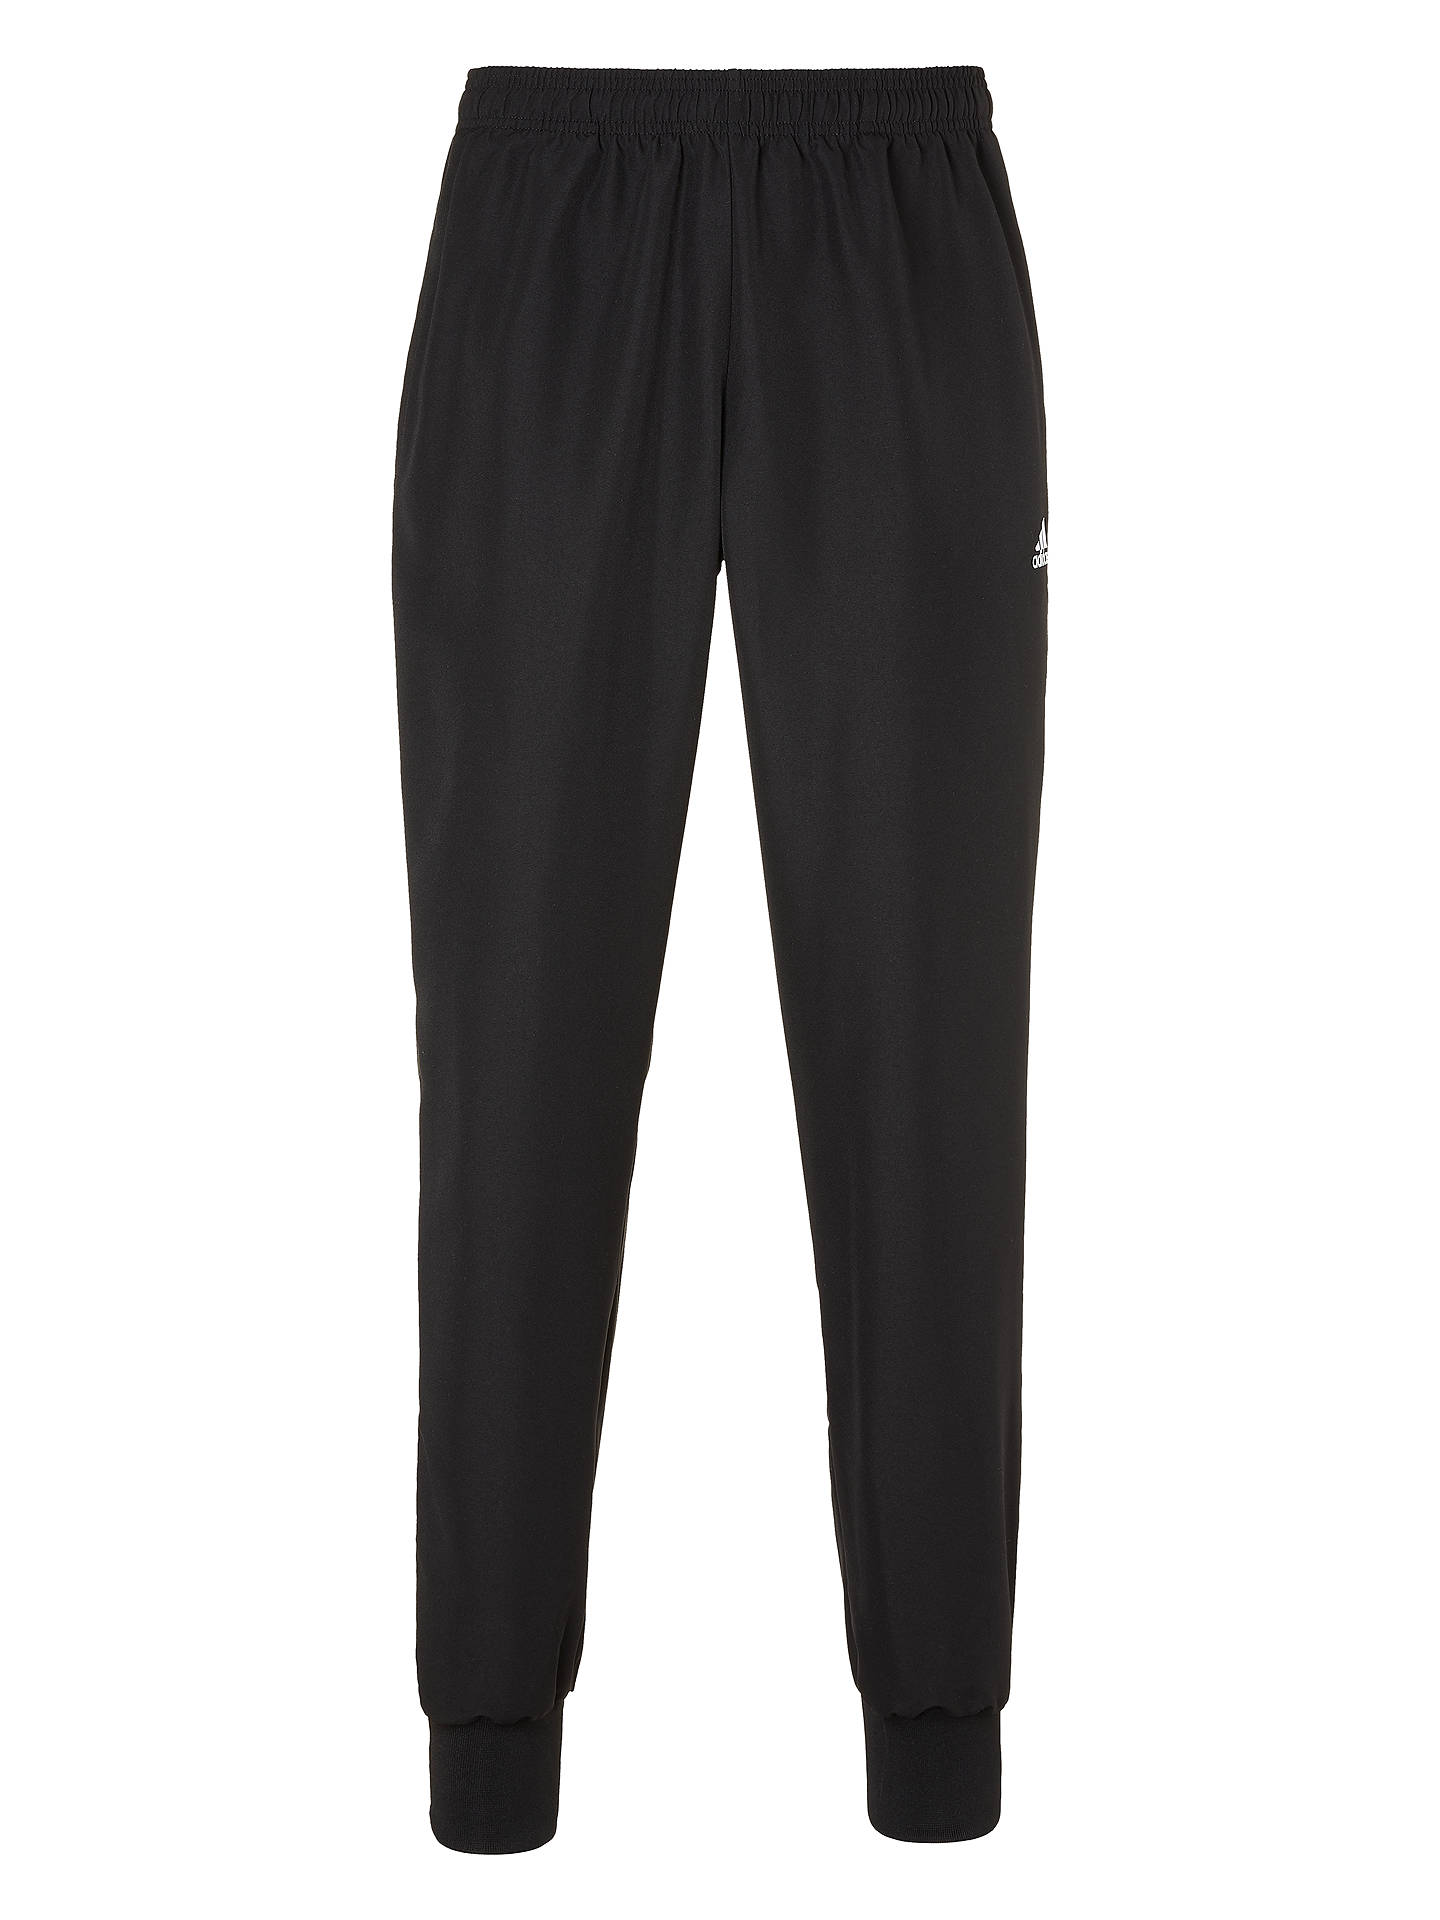 Buy adidas Essential Stanford 2.0 Tracksuit Bottoms, Black, S Online at johnlewis.com